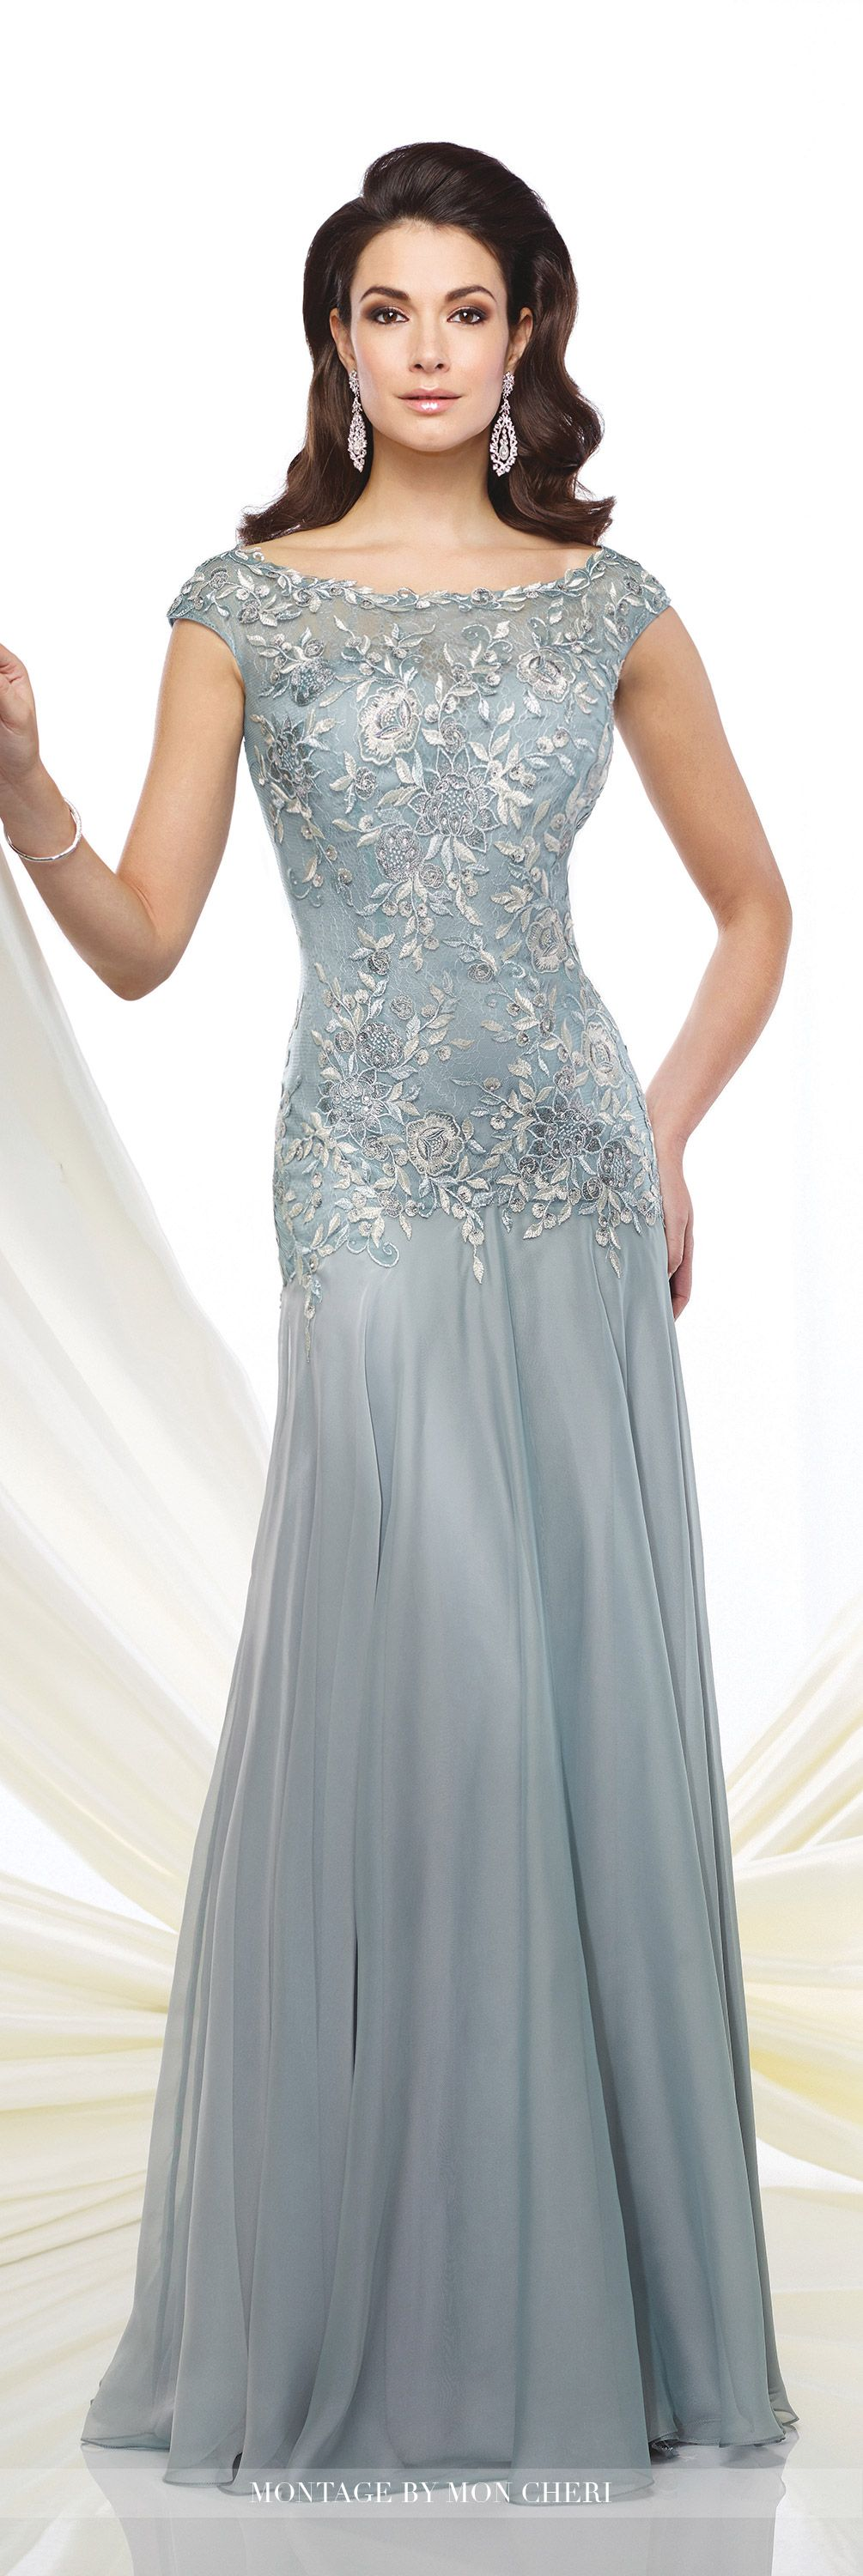 Formal Evening Gowns by Mon Cheri - Fall 2016 - Style No. 216962 - chiffon and lace cap sleeve evening dress